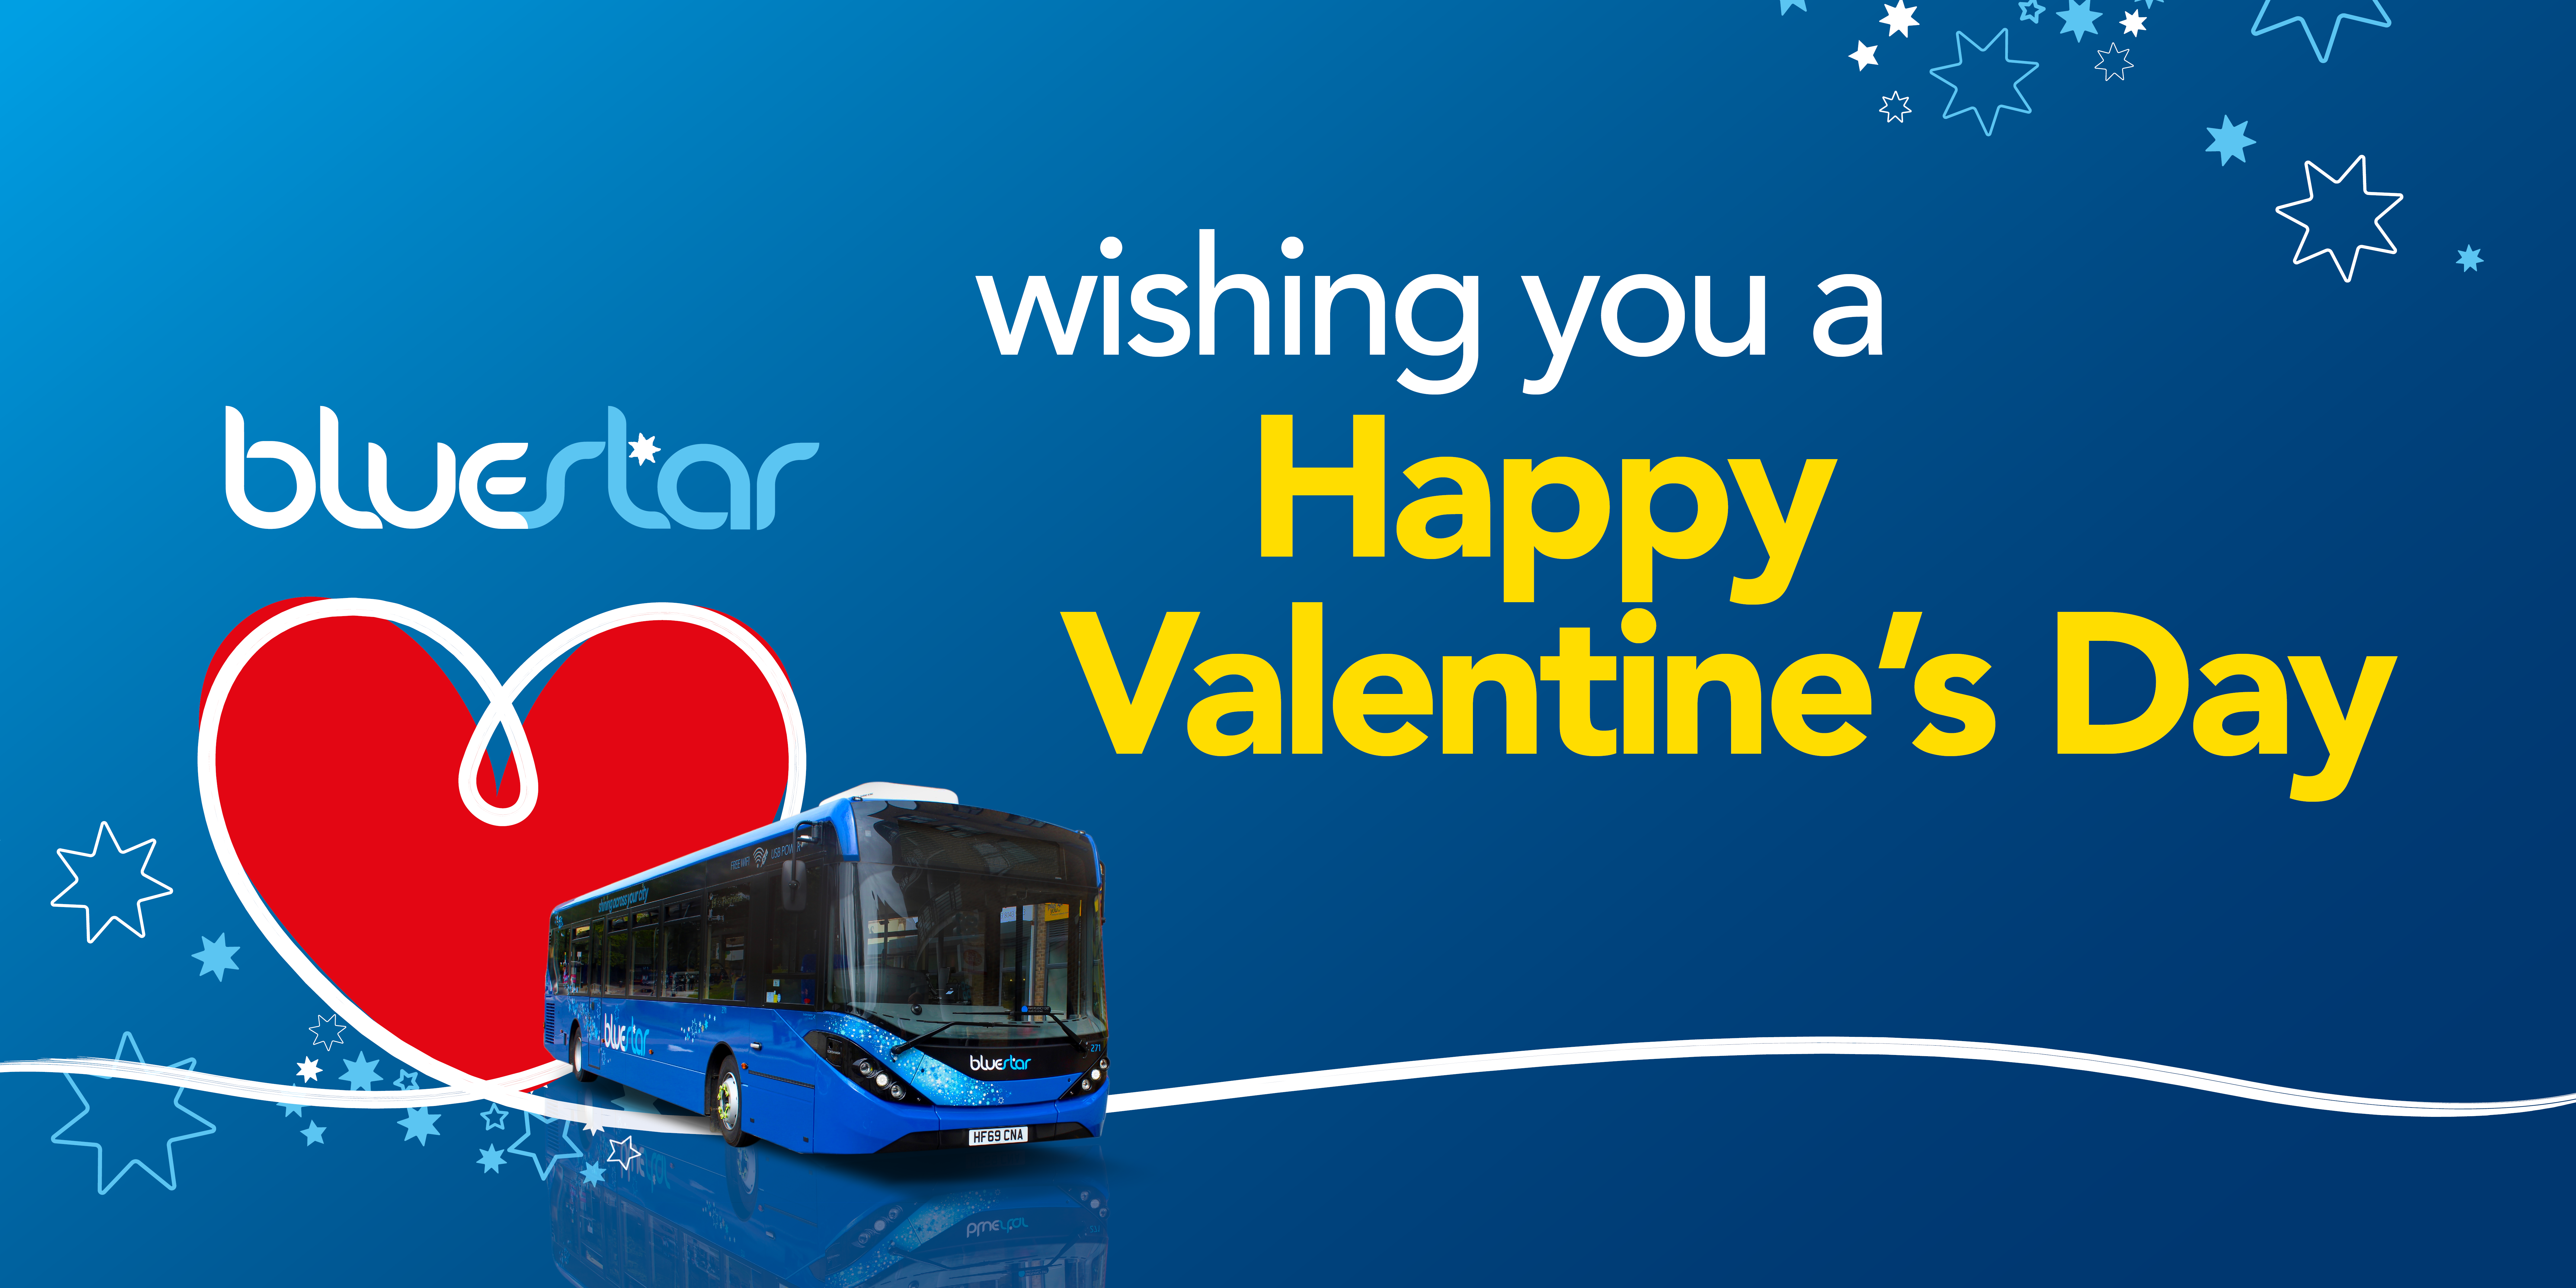 Image of a bluestar bus with text reading 'wishing you a happy valentine's day'